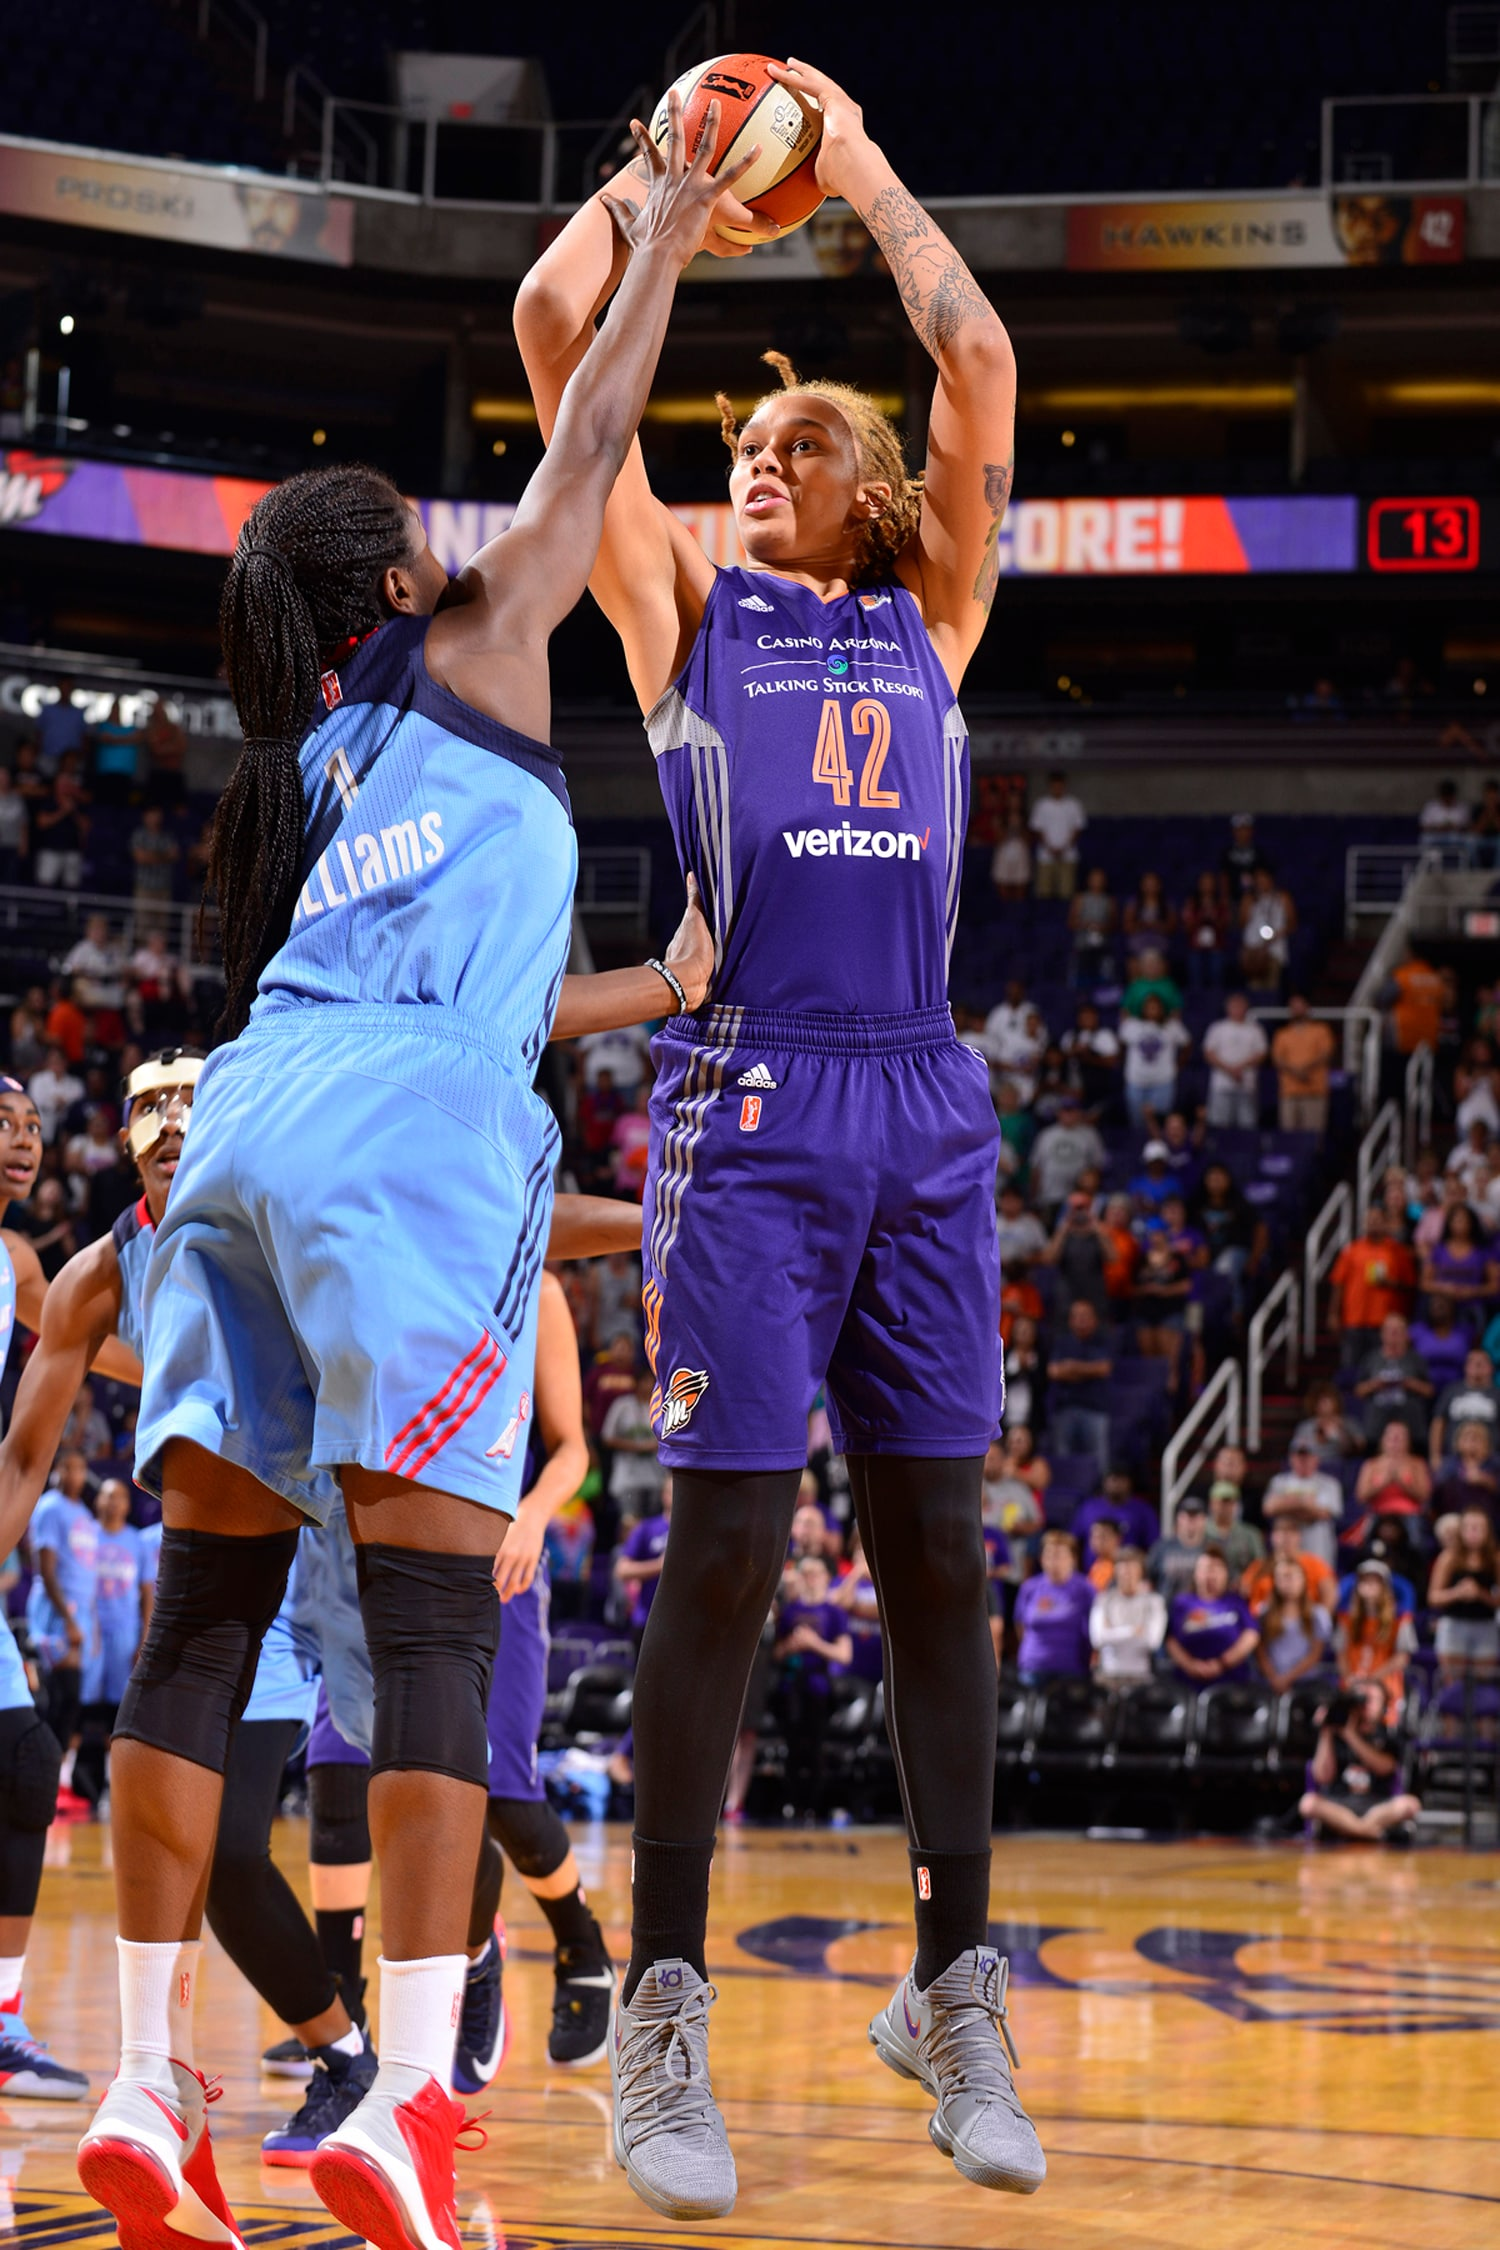 Phoenix Mercury vs Atlana Dream Brittney Griner